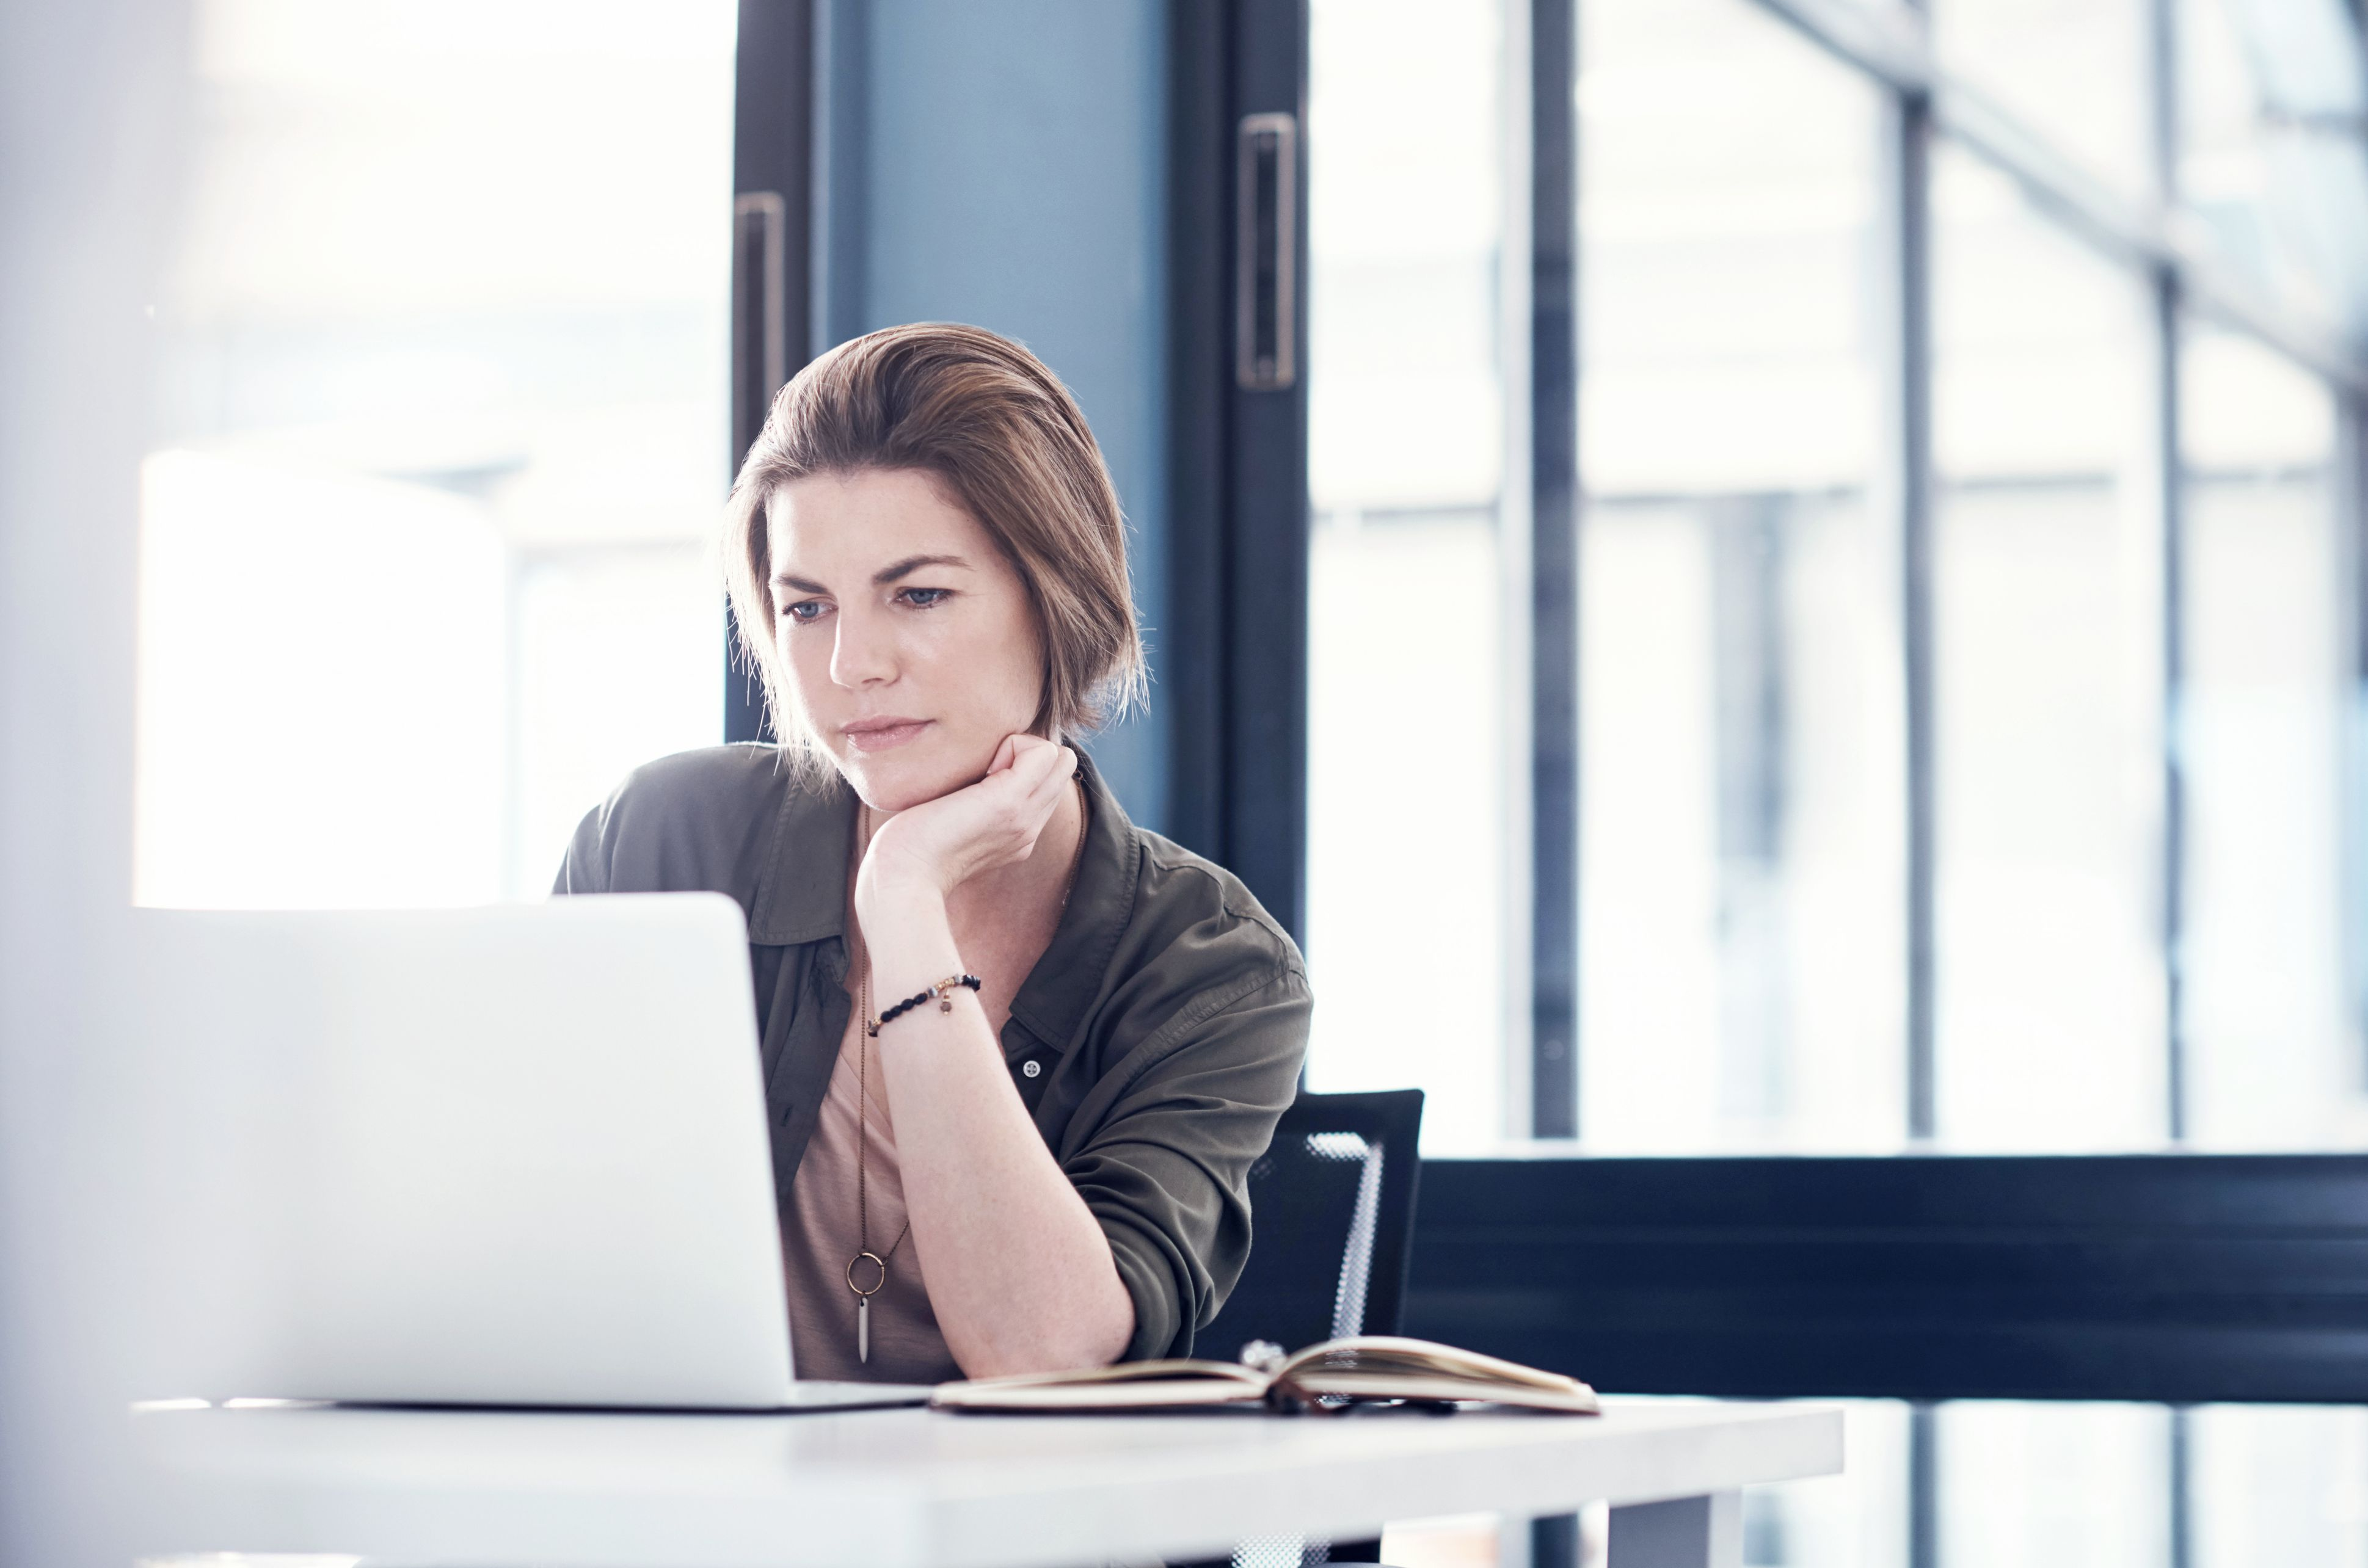 lady looking pensively at her laptop screen in an office